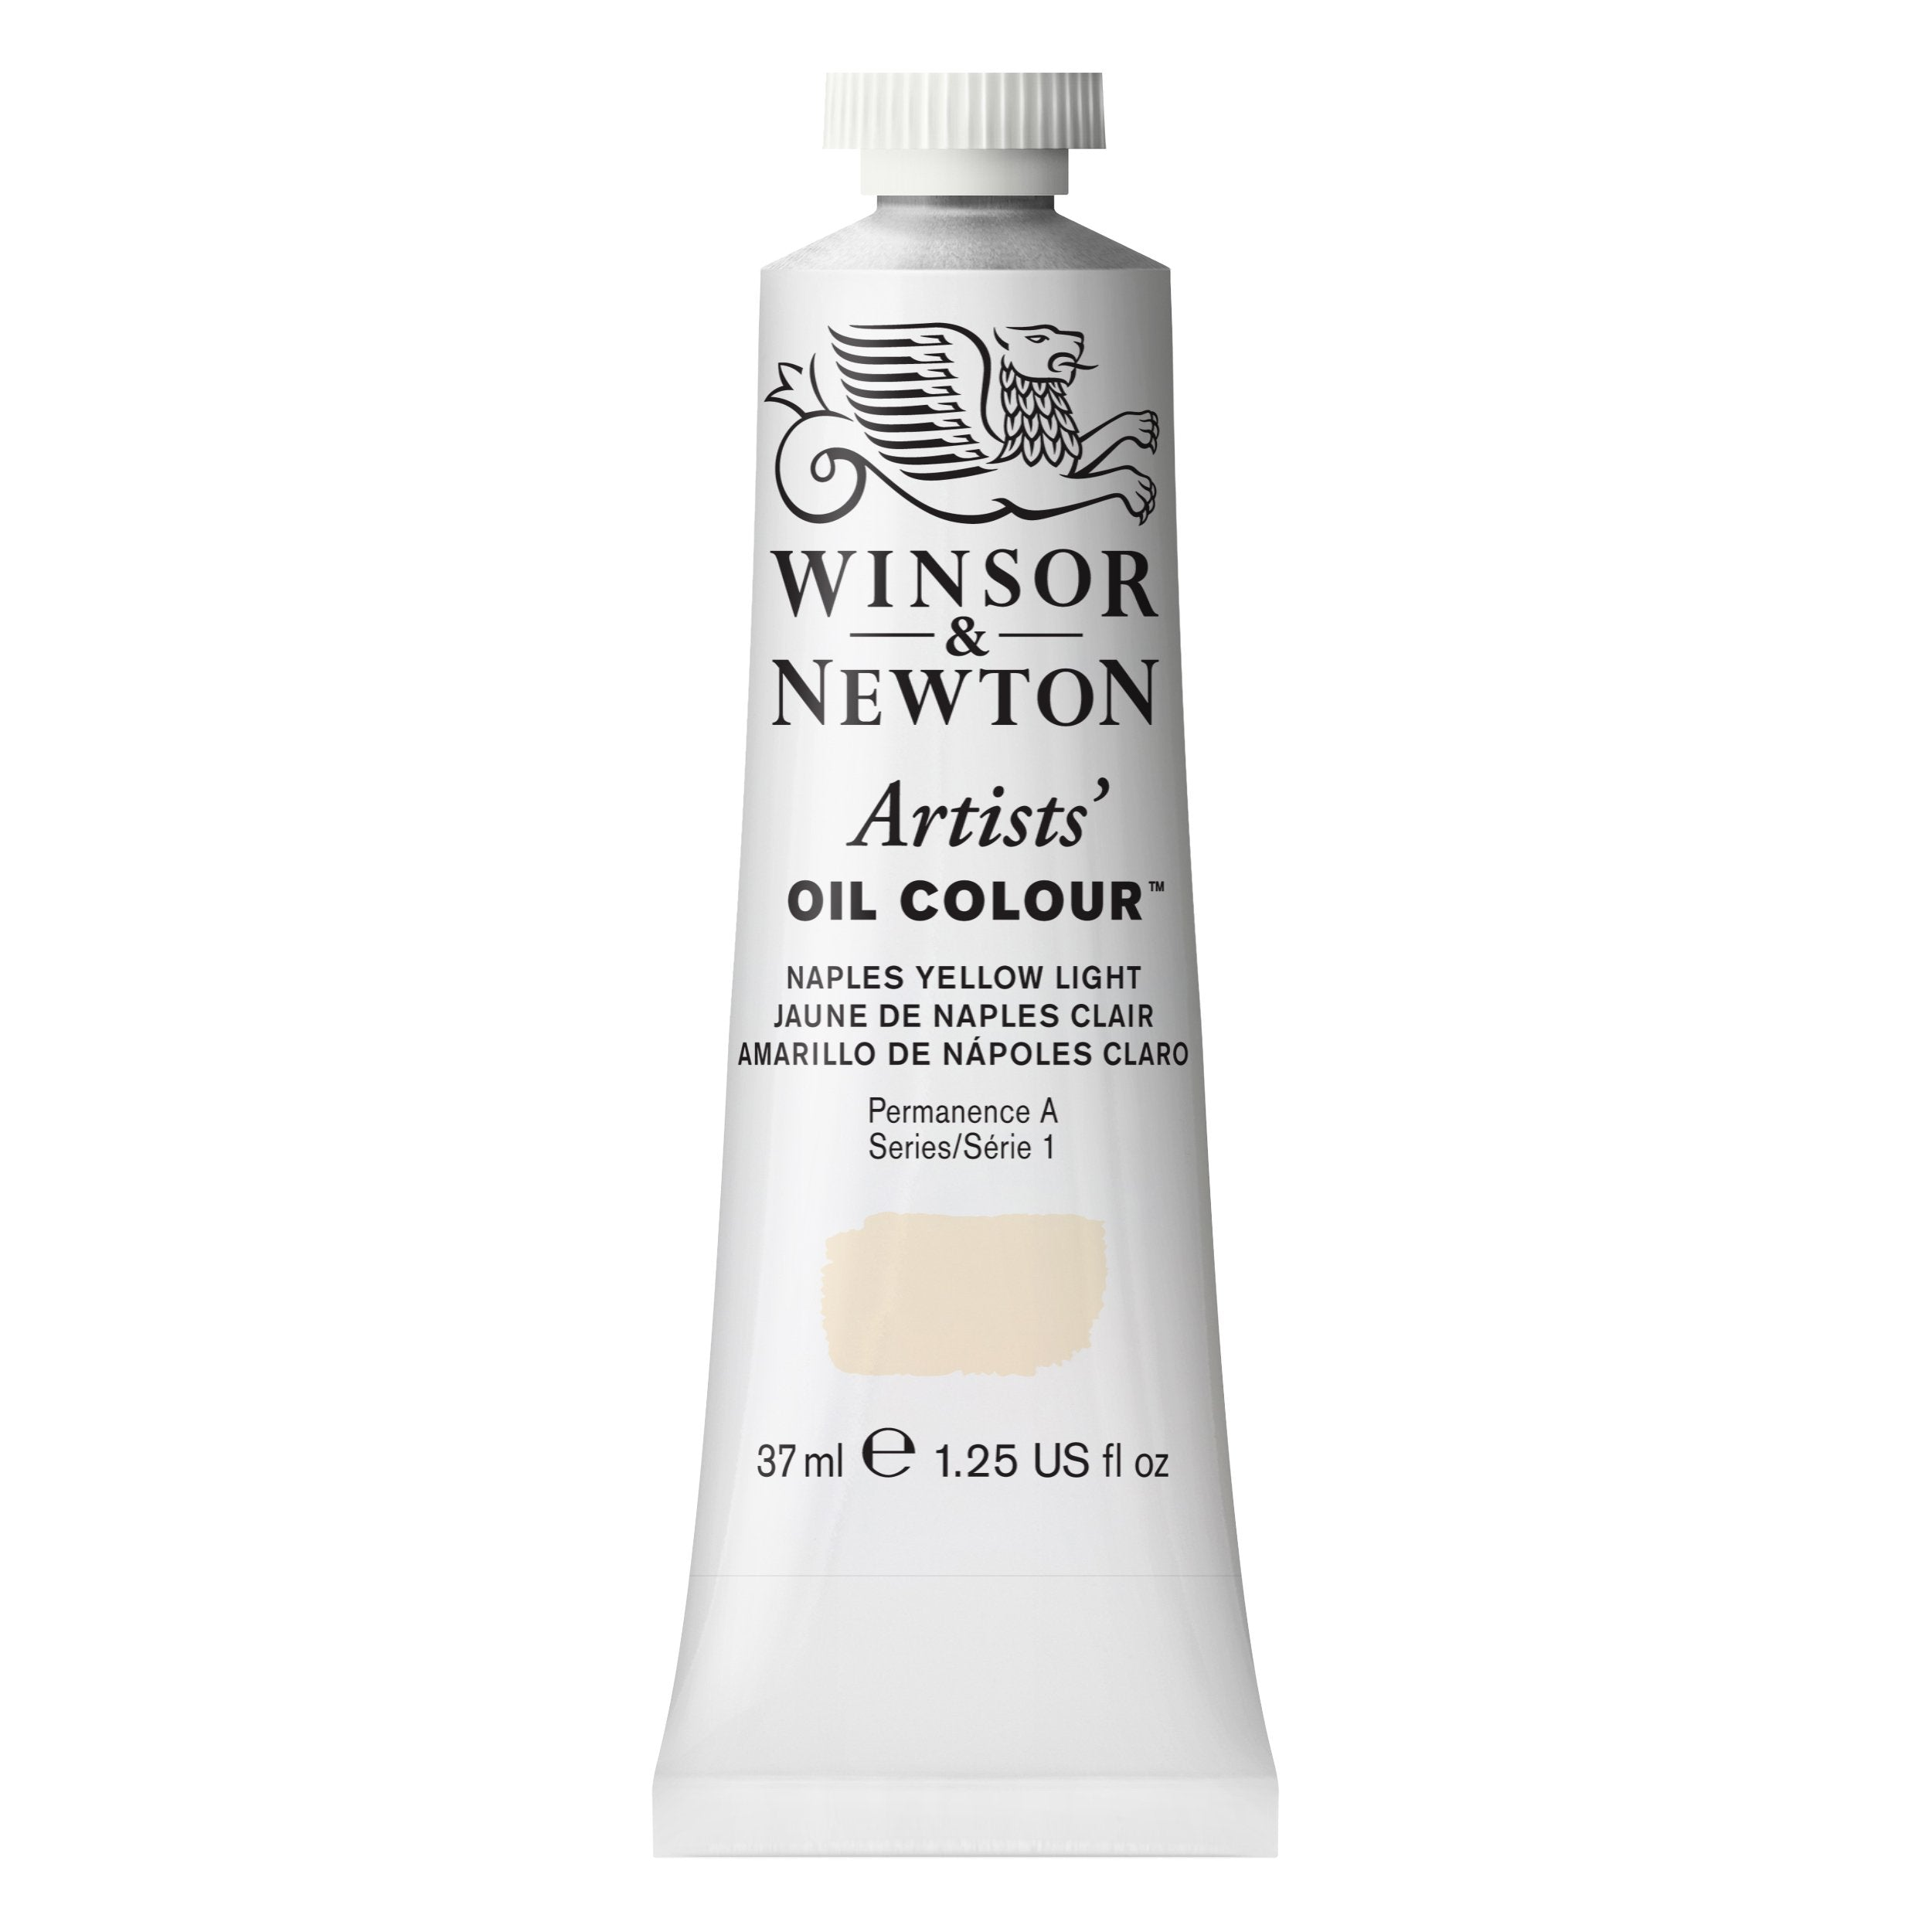 Winsor & Newton Artists' Oil Color, 37ml, Naples Yellow Light